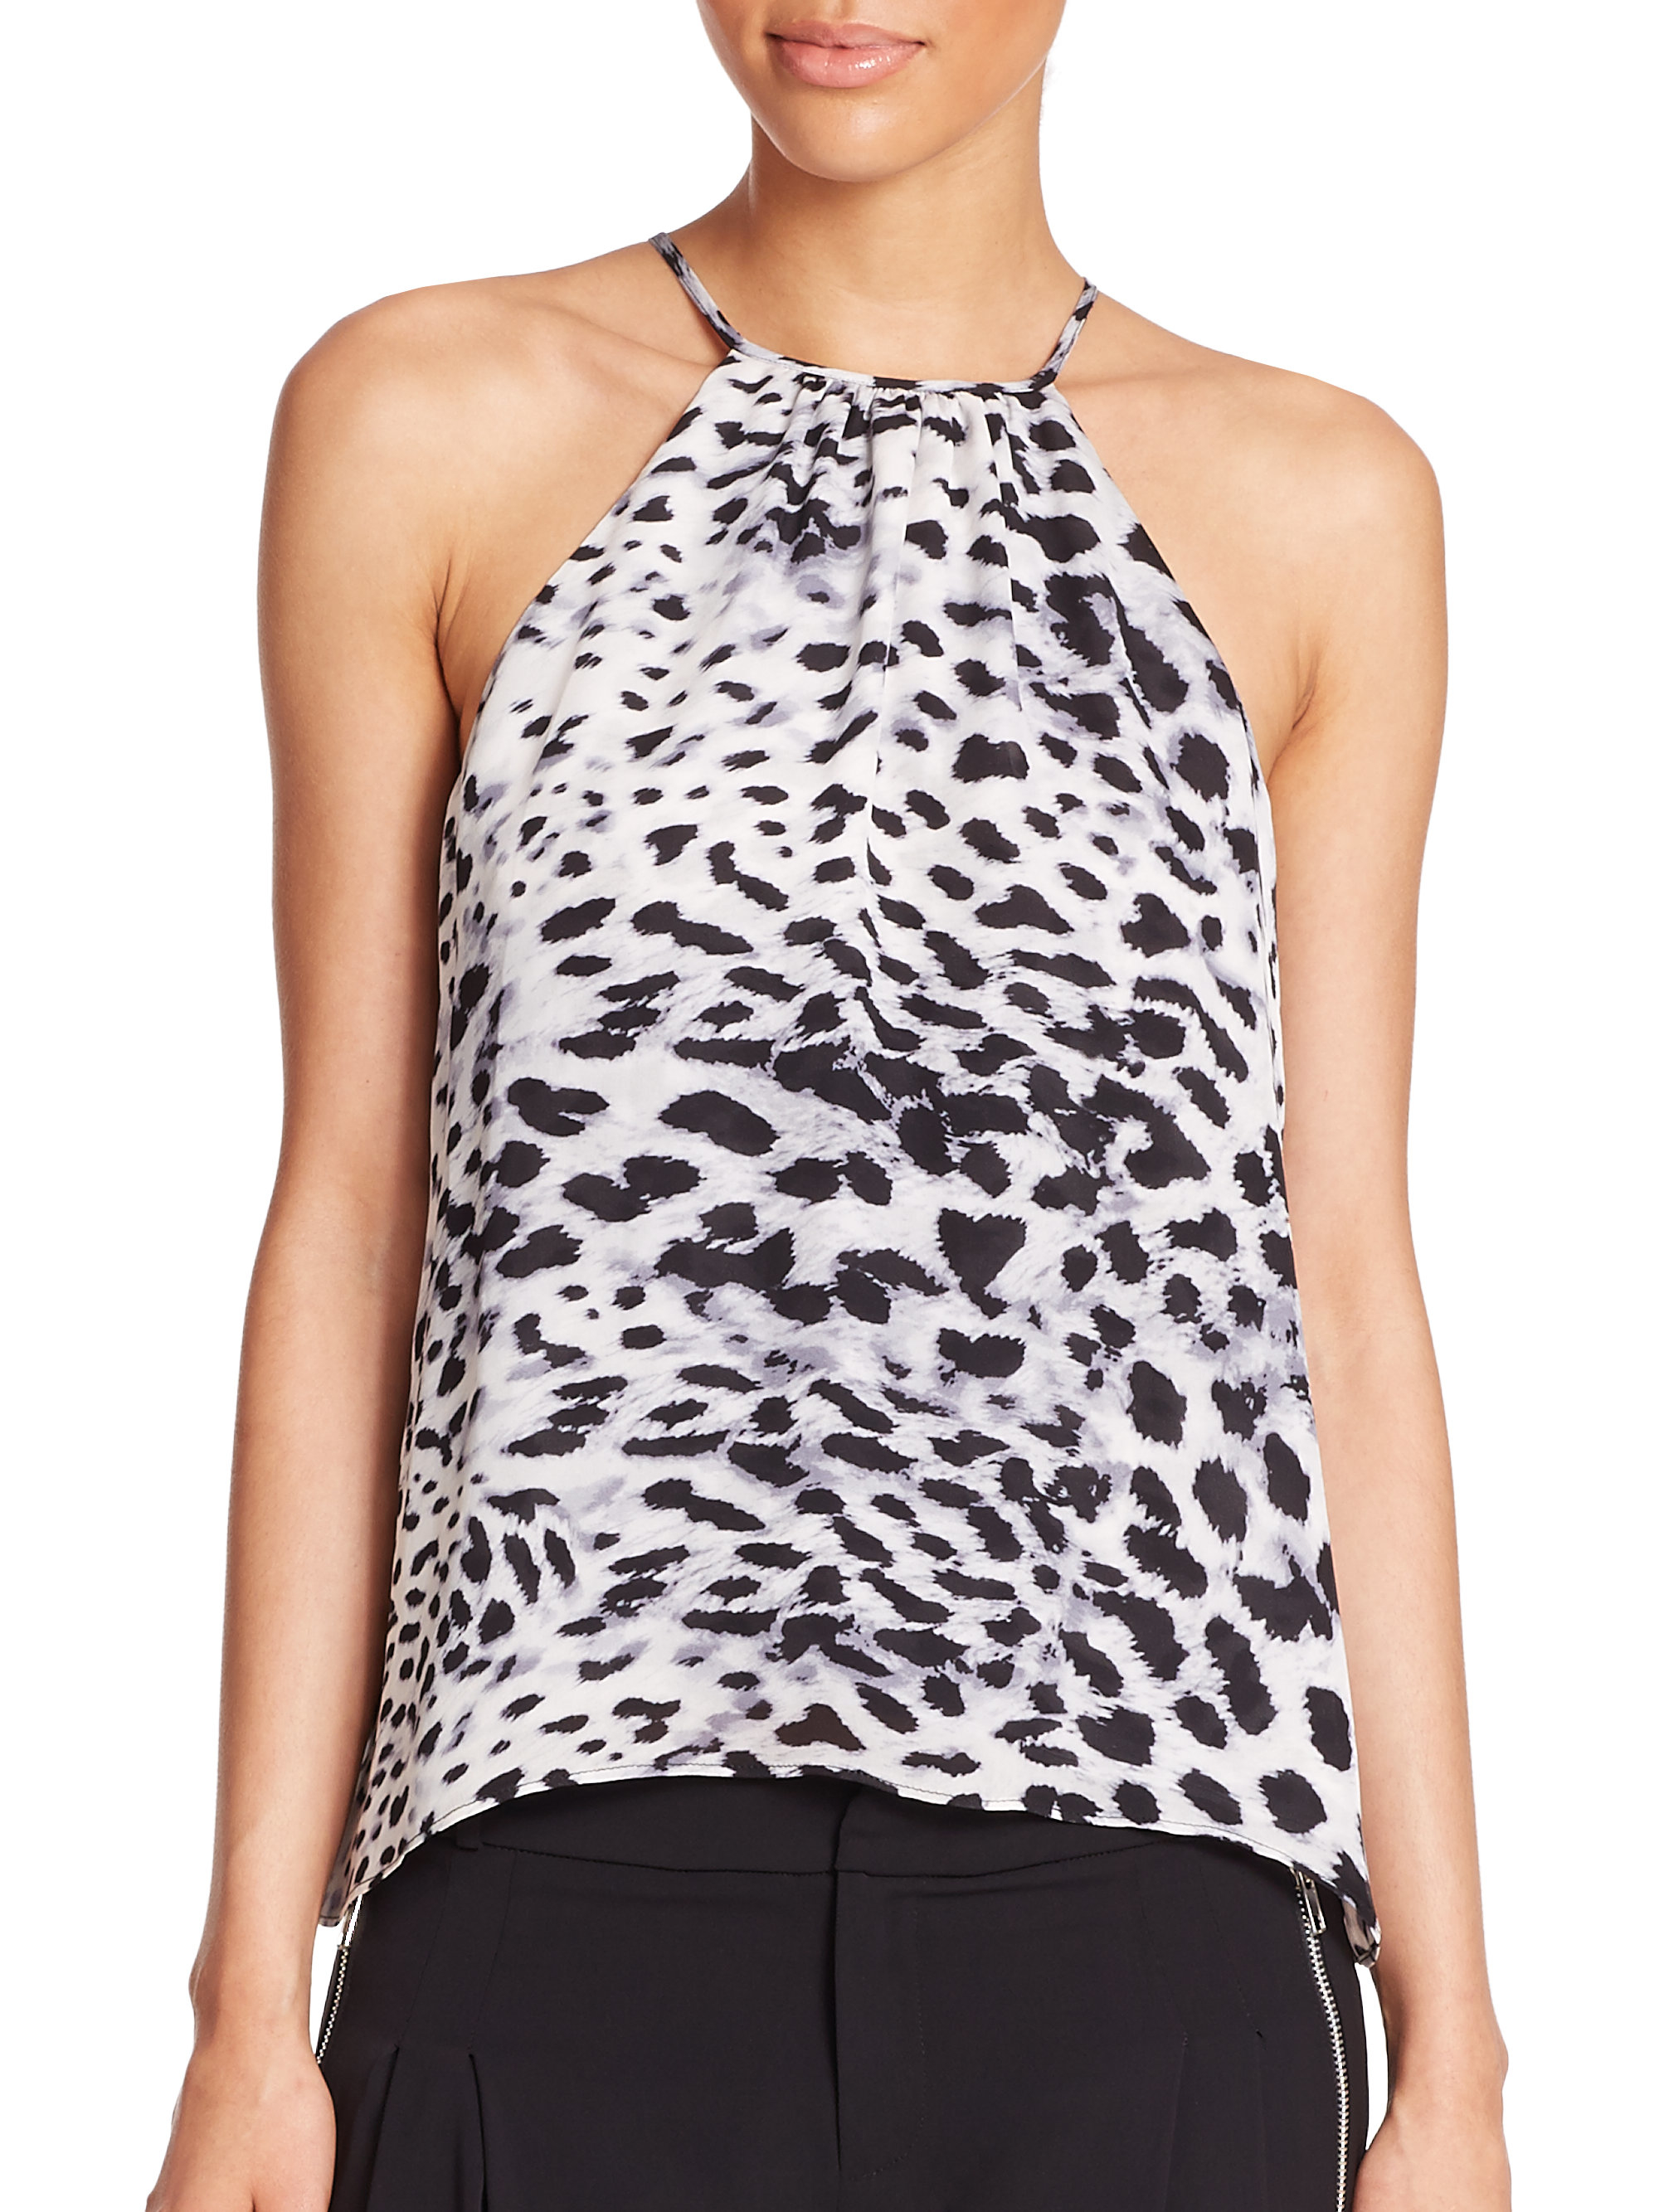 leopard print top gallery wvfxyhs